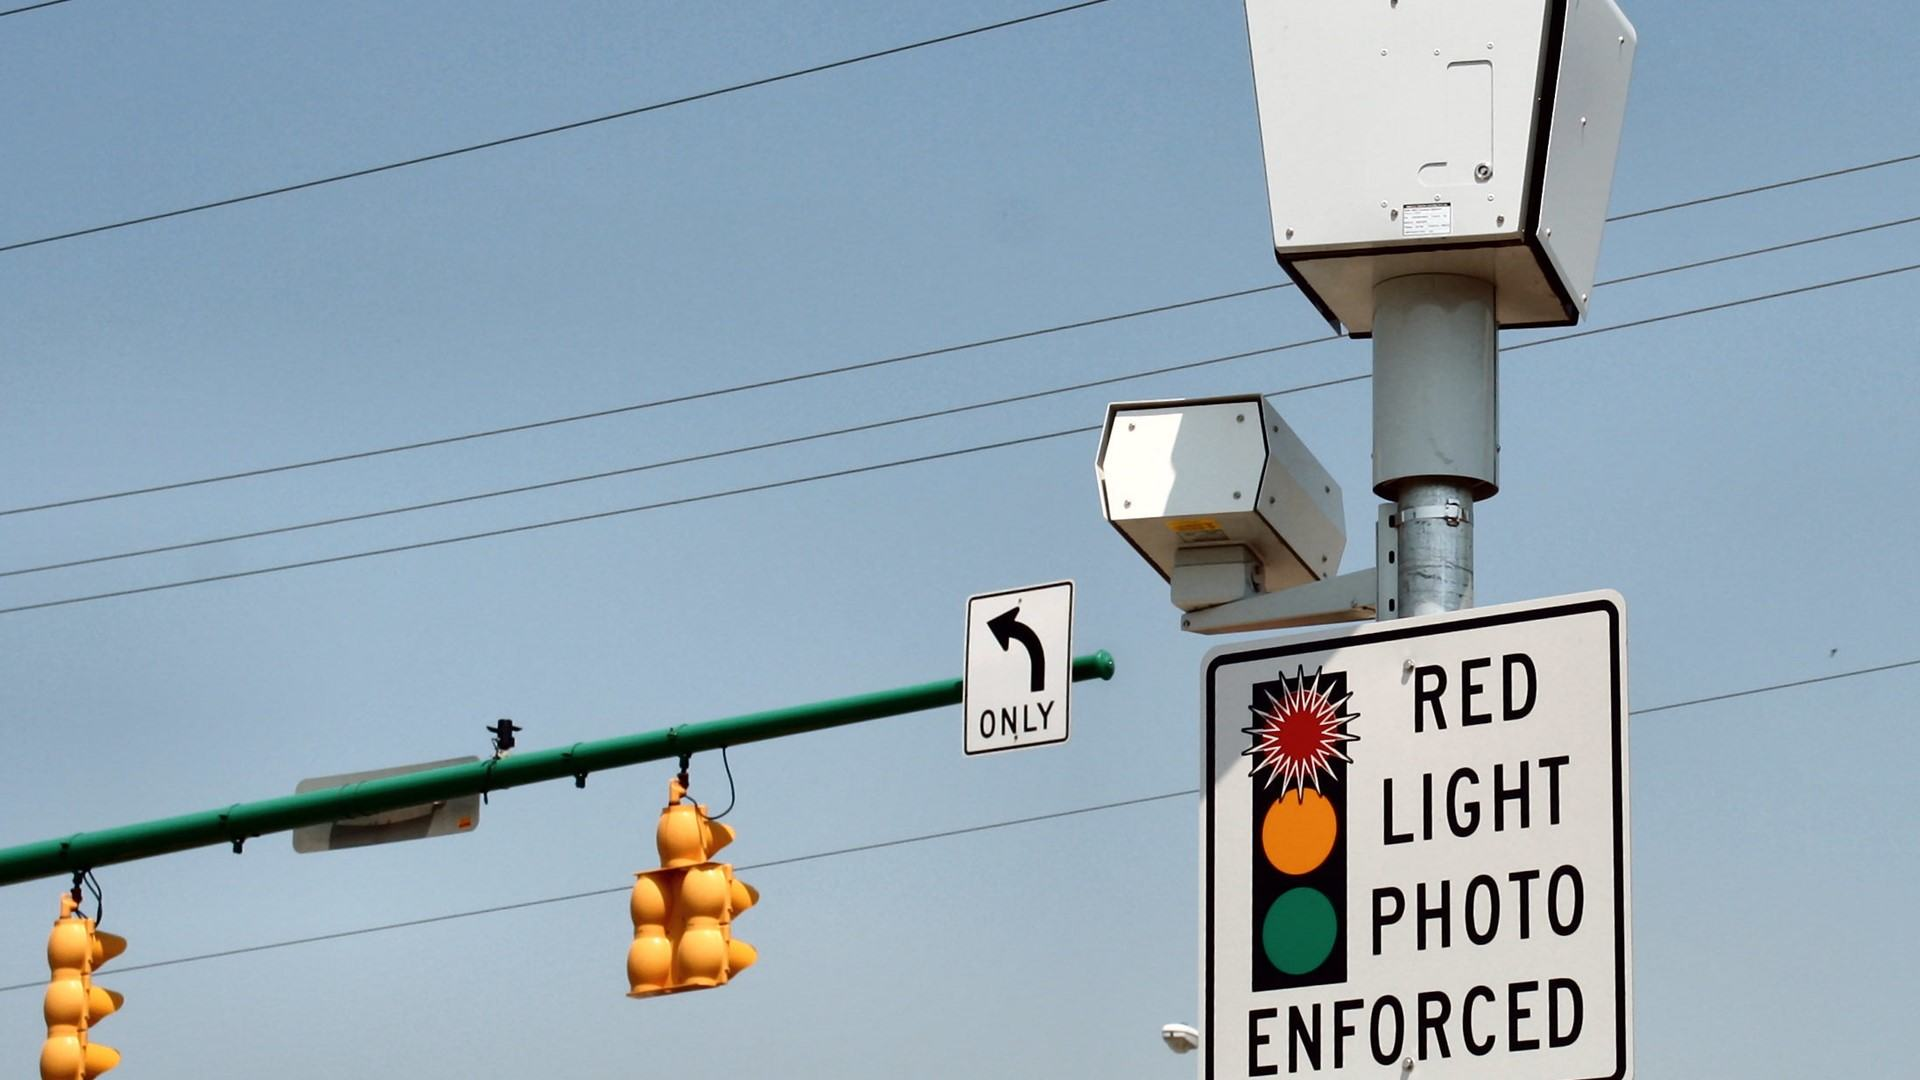 red light camera enforcement - City Of Miami Gardens Red Light Camera